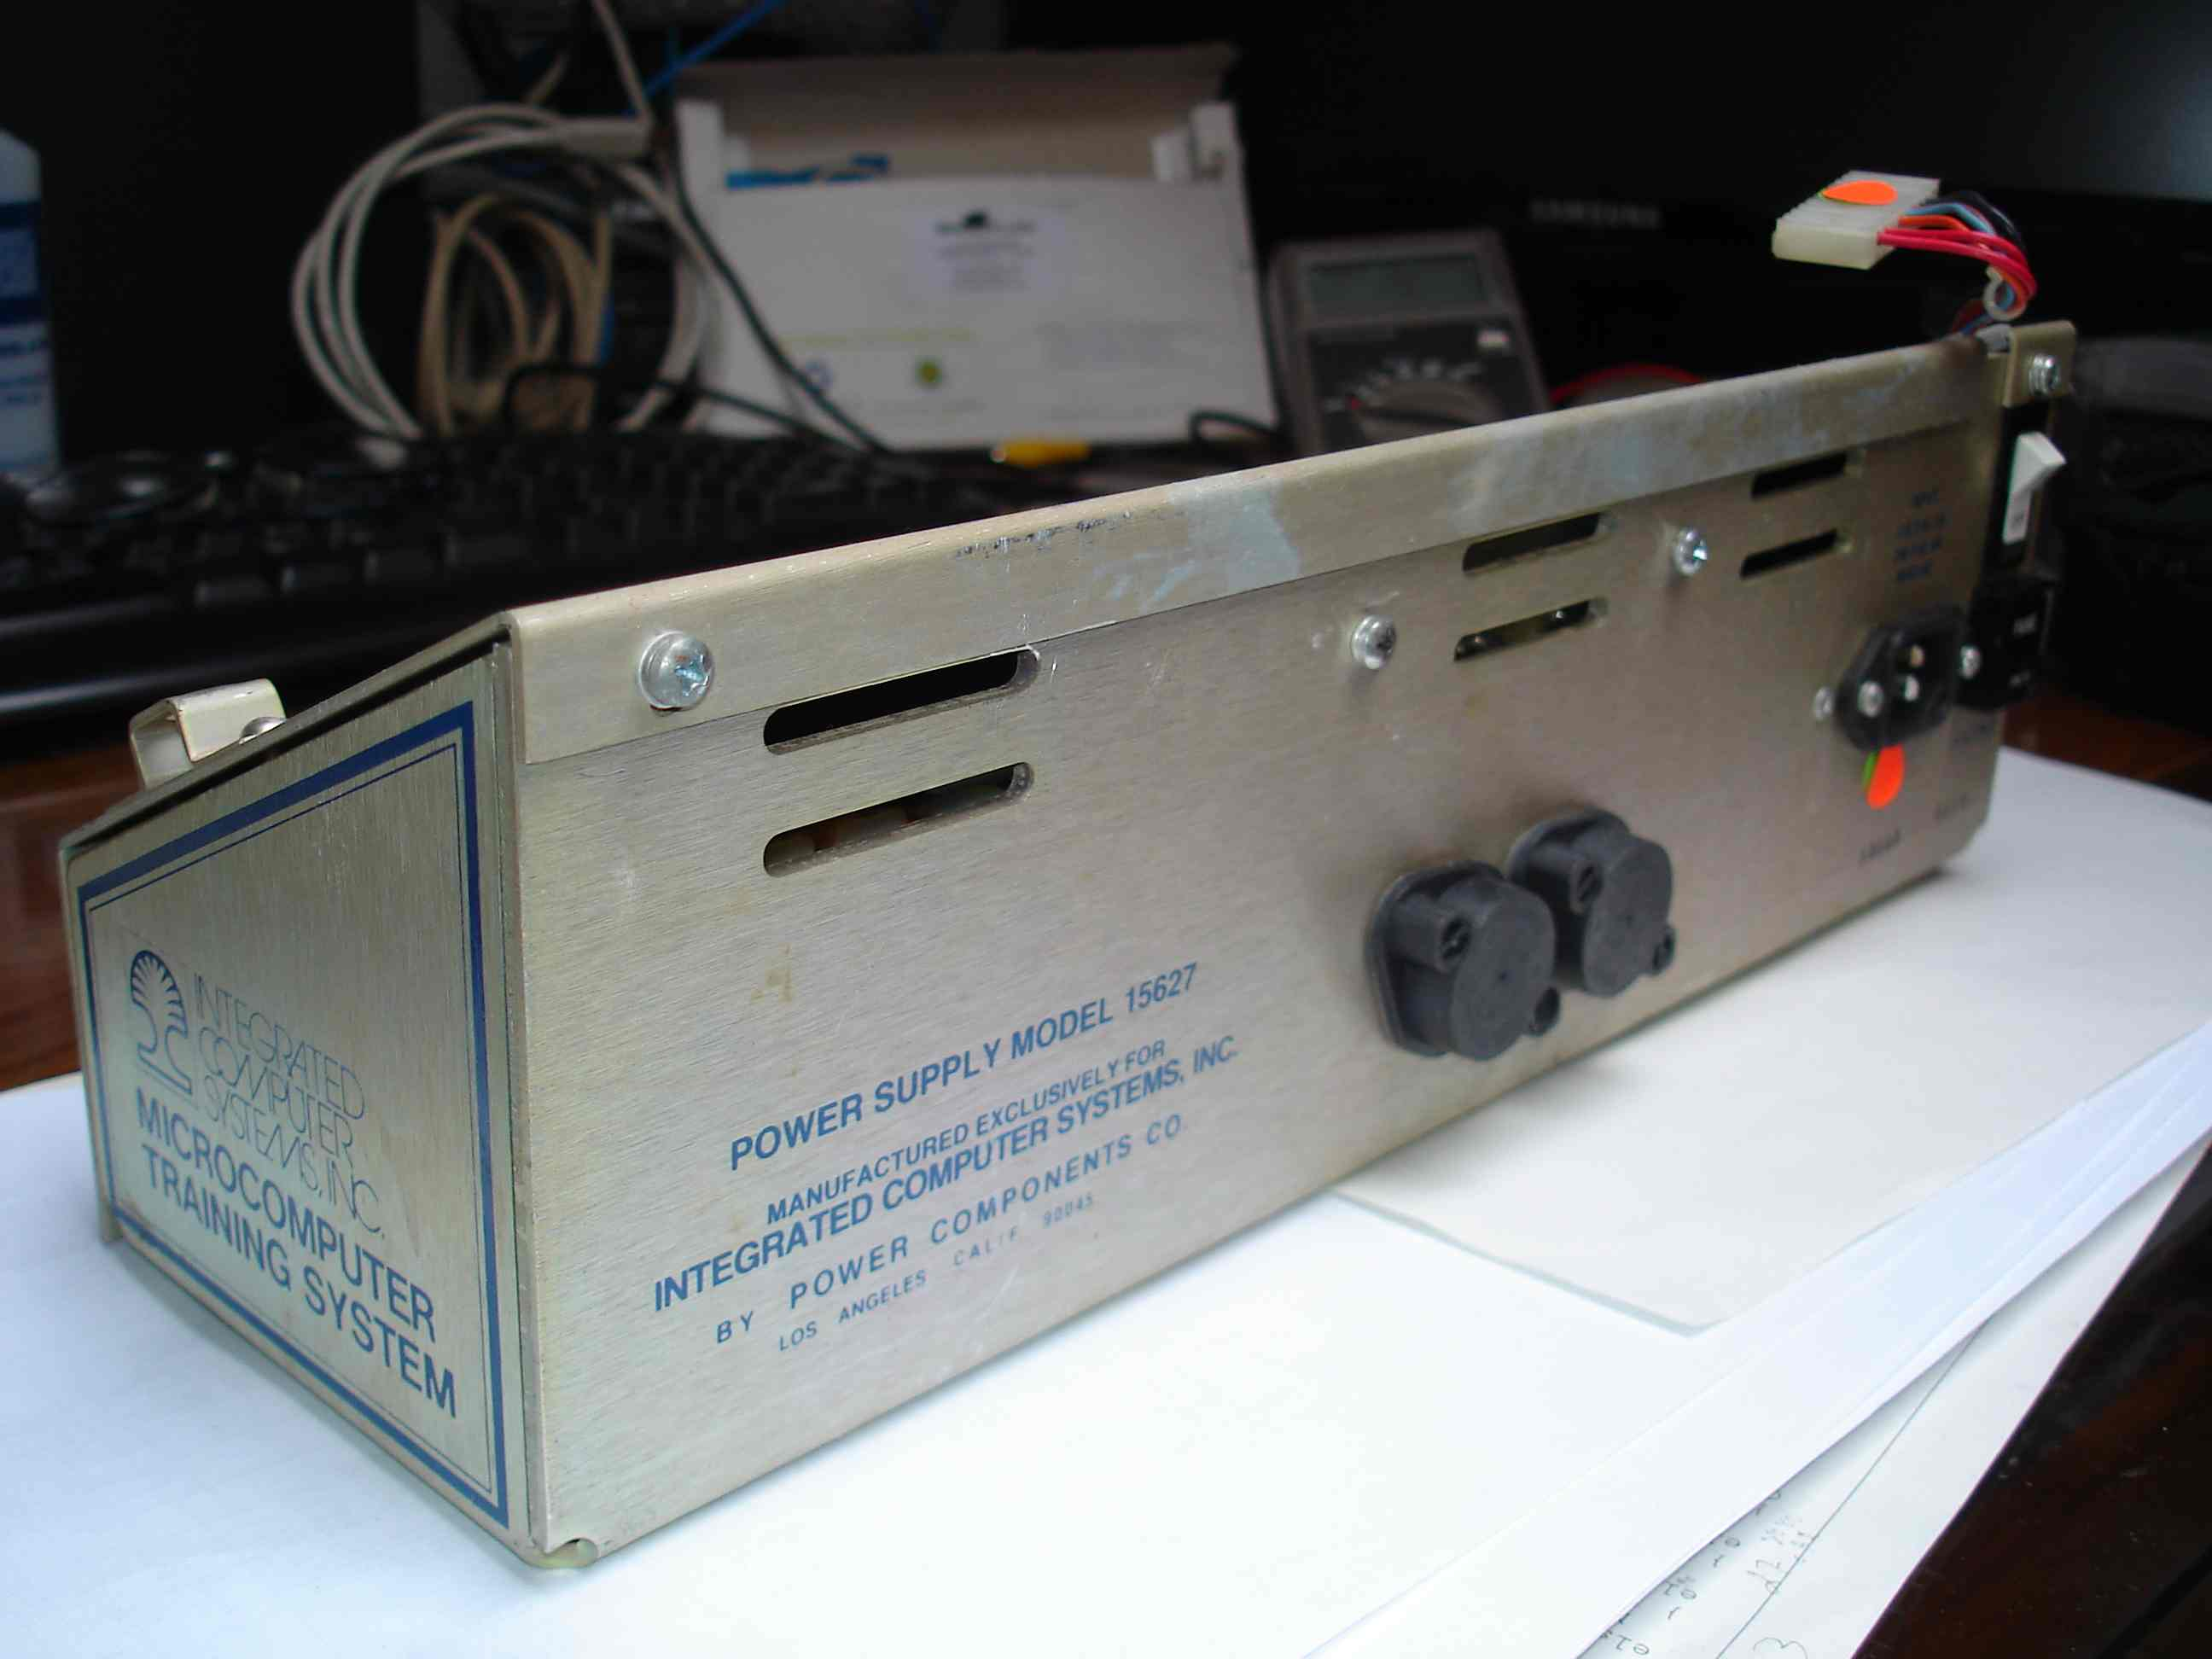 power supply 15627.JPG